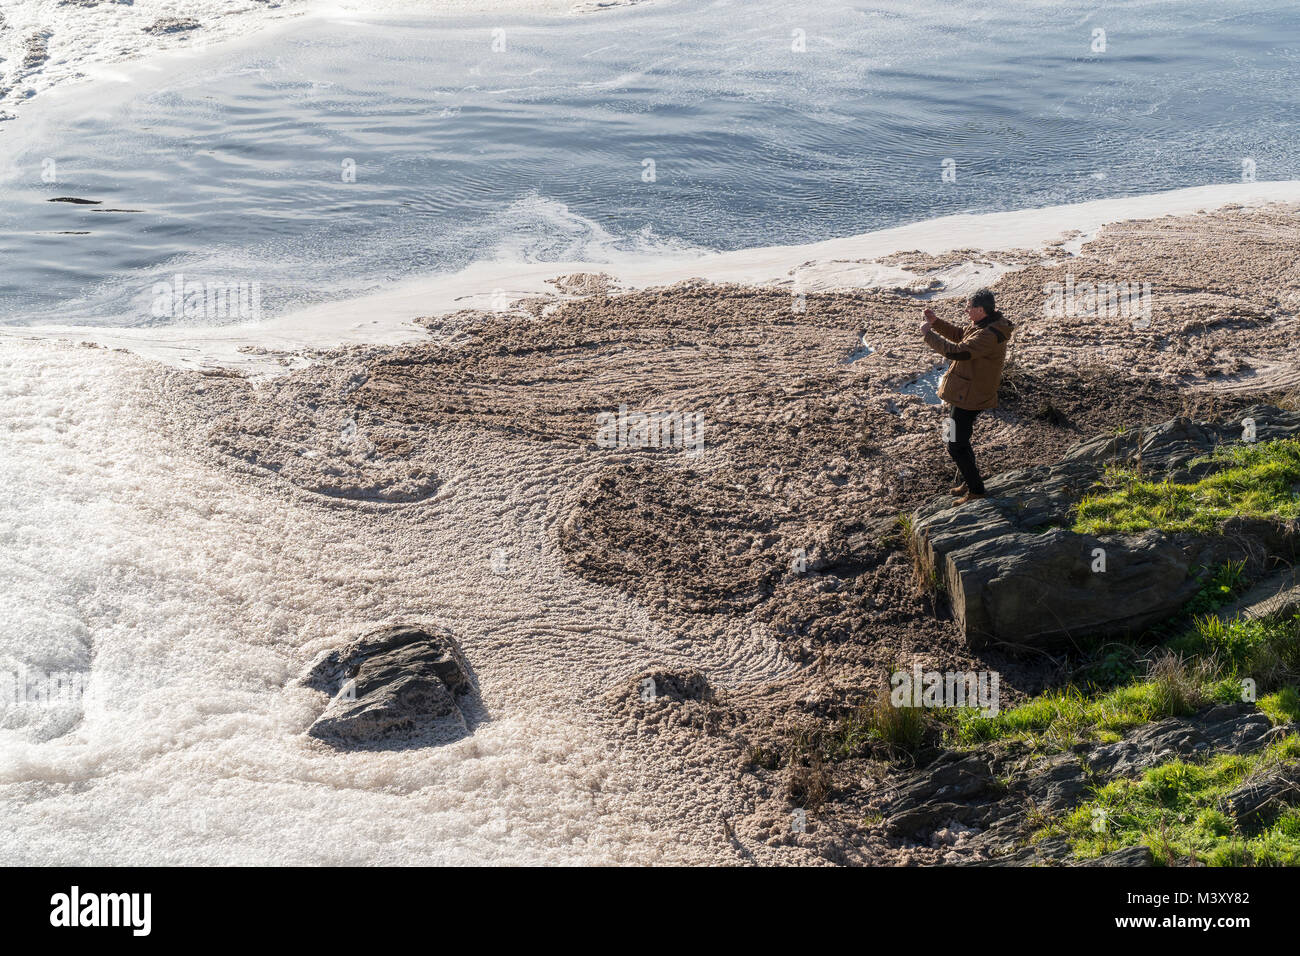 River pollution. Man observing and photographing an ecological accident in the Tagus river caused by paper mills - Stock Image